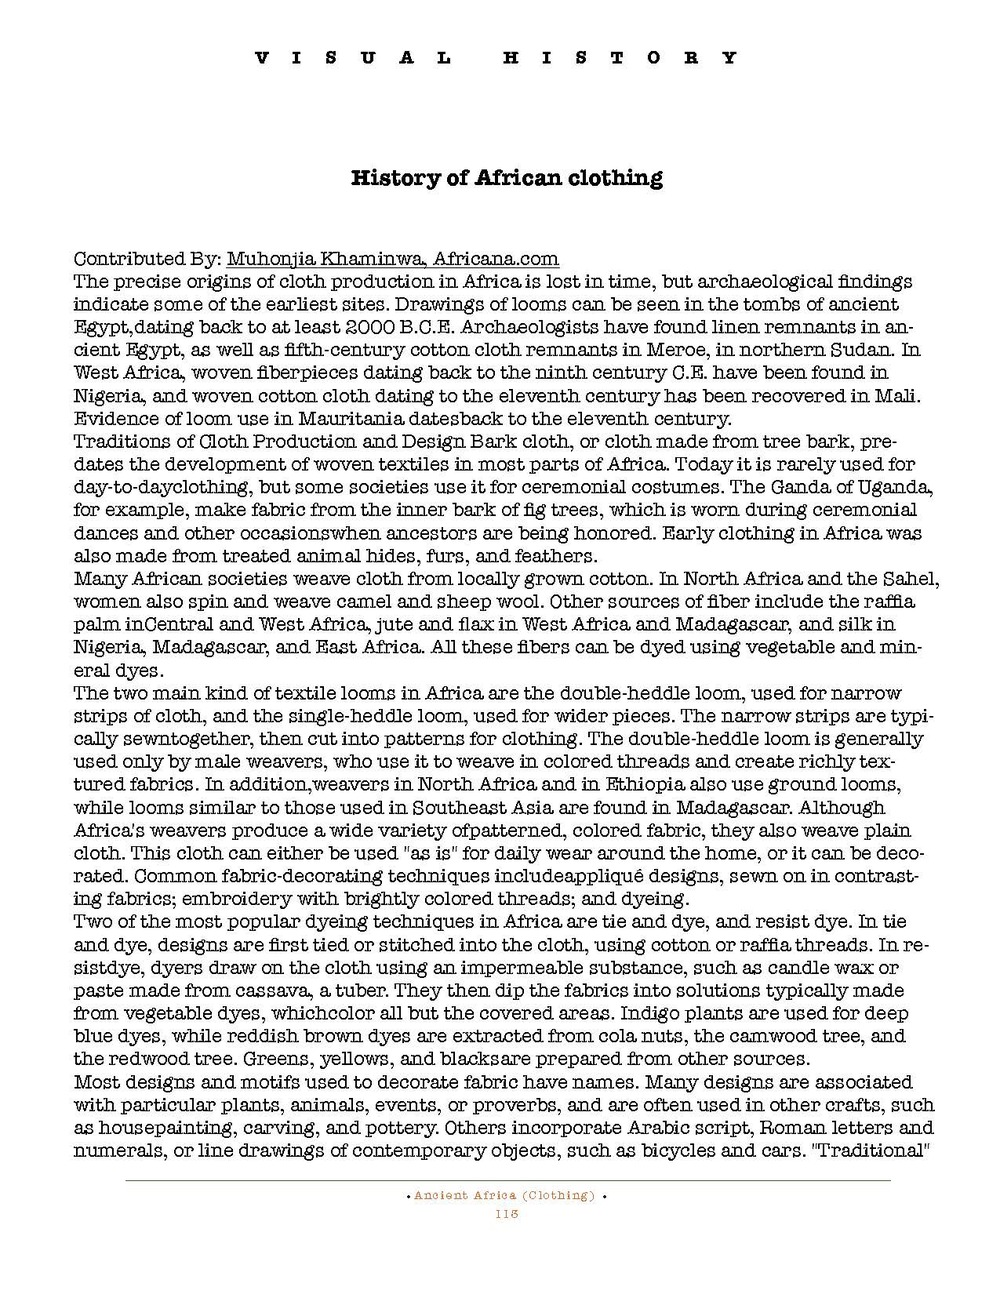 HOCE- Ancient Africa Notes_Page_113.jpg